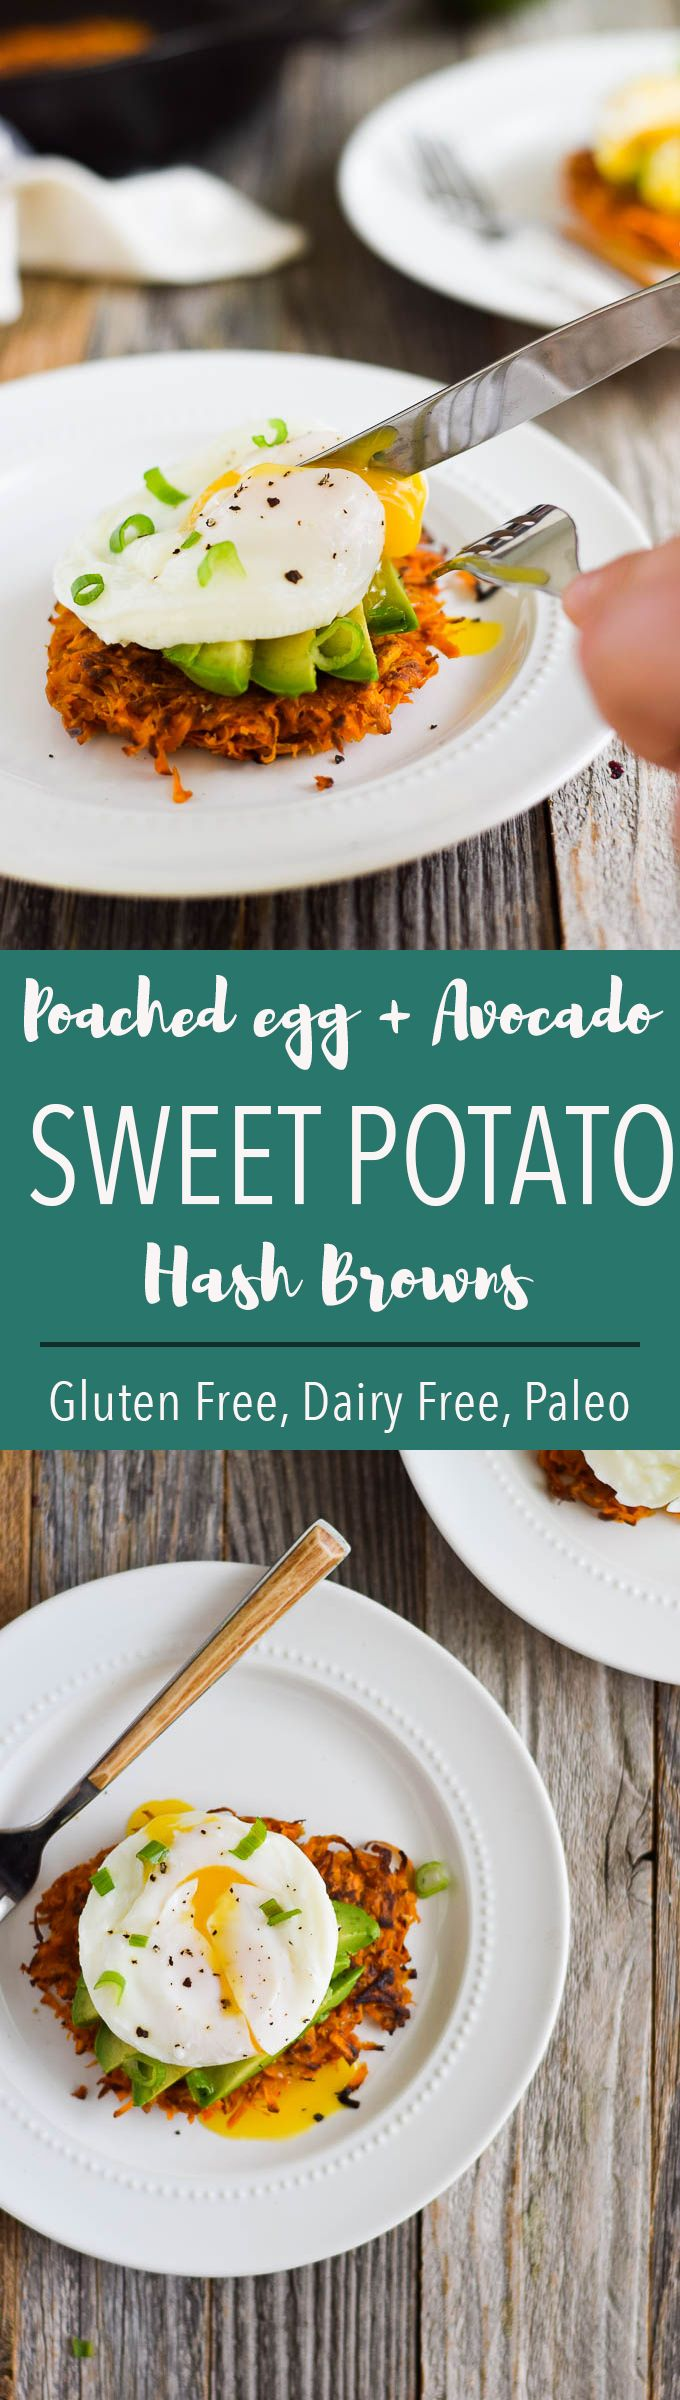 Up your brunch game with sweet potato rounds, eggs + avocado! {Gluten Free, Dairy Free, Paleo}